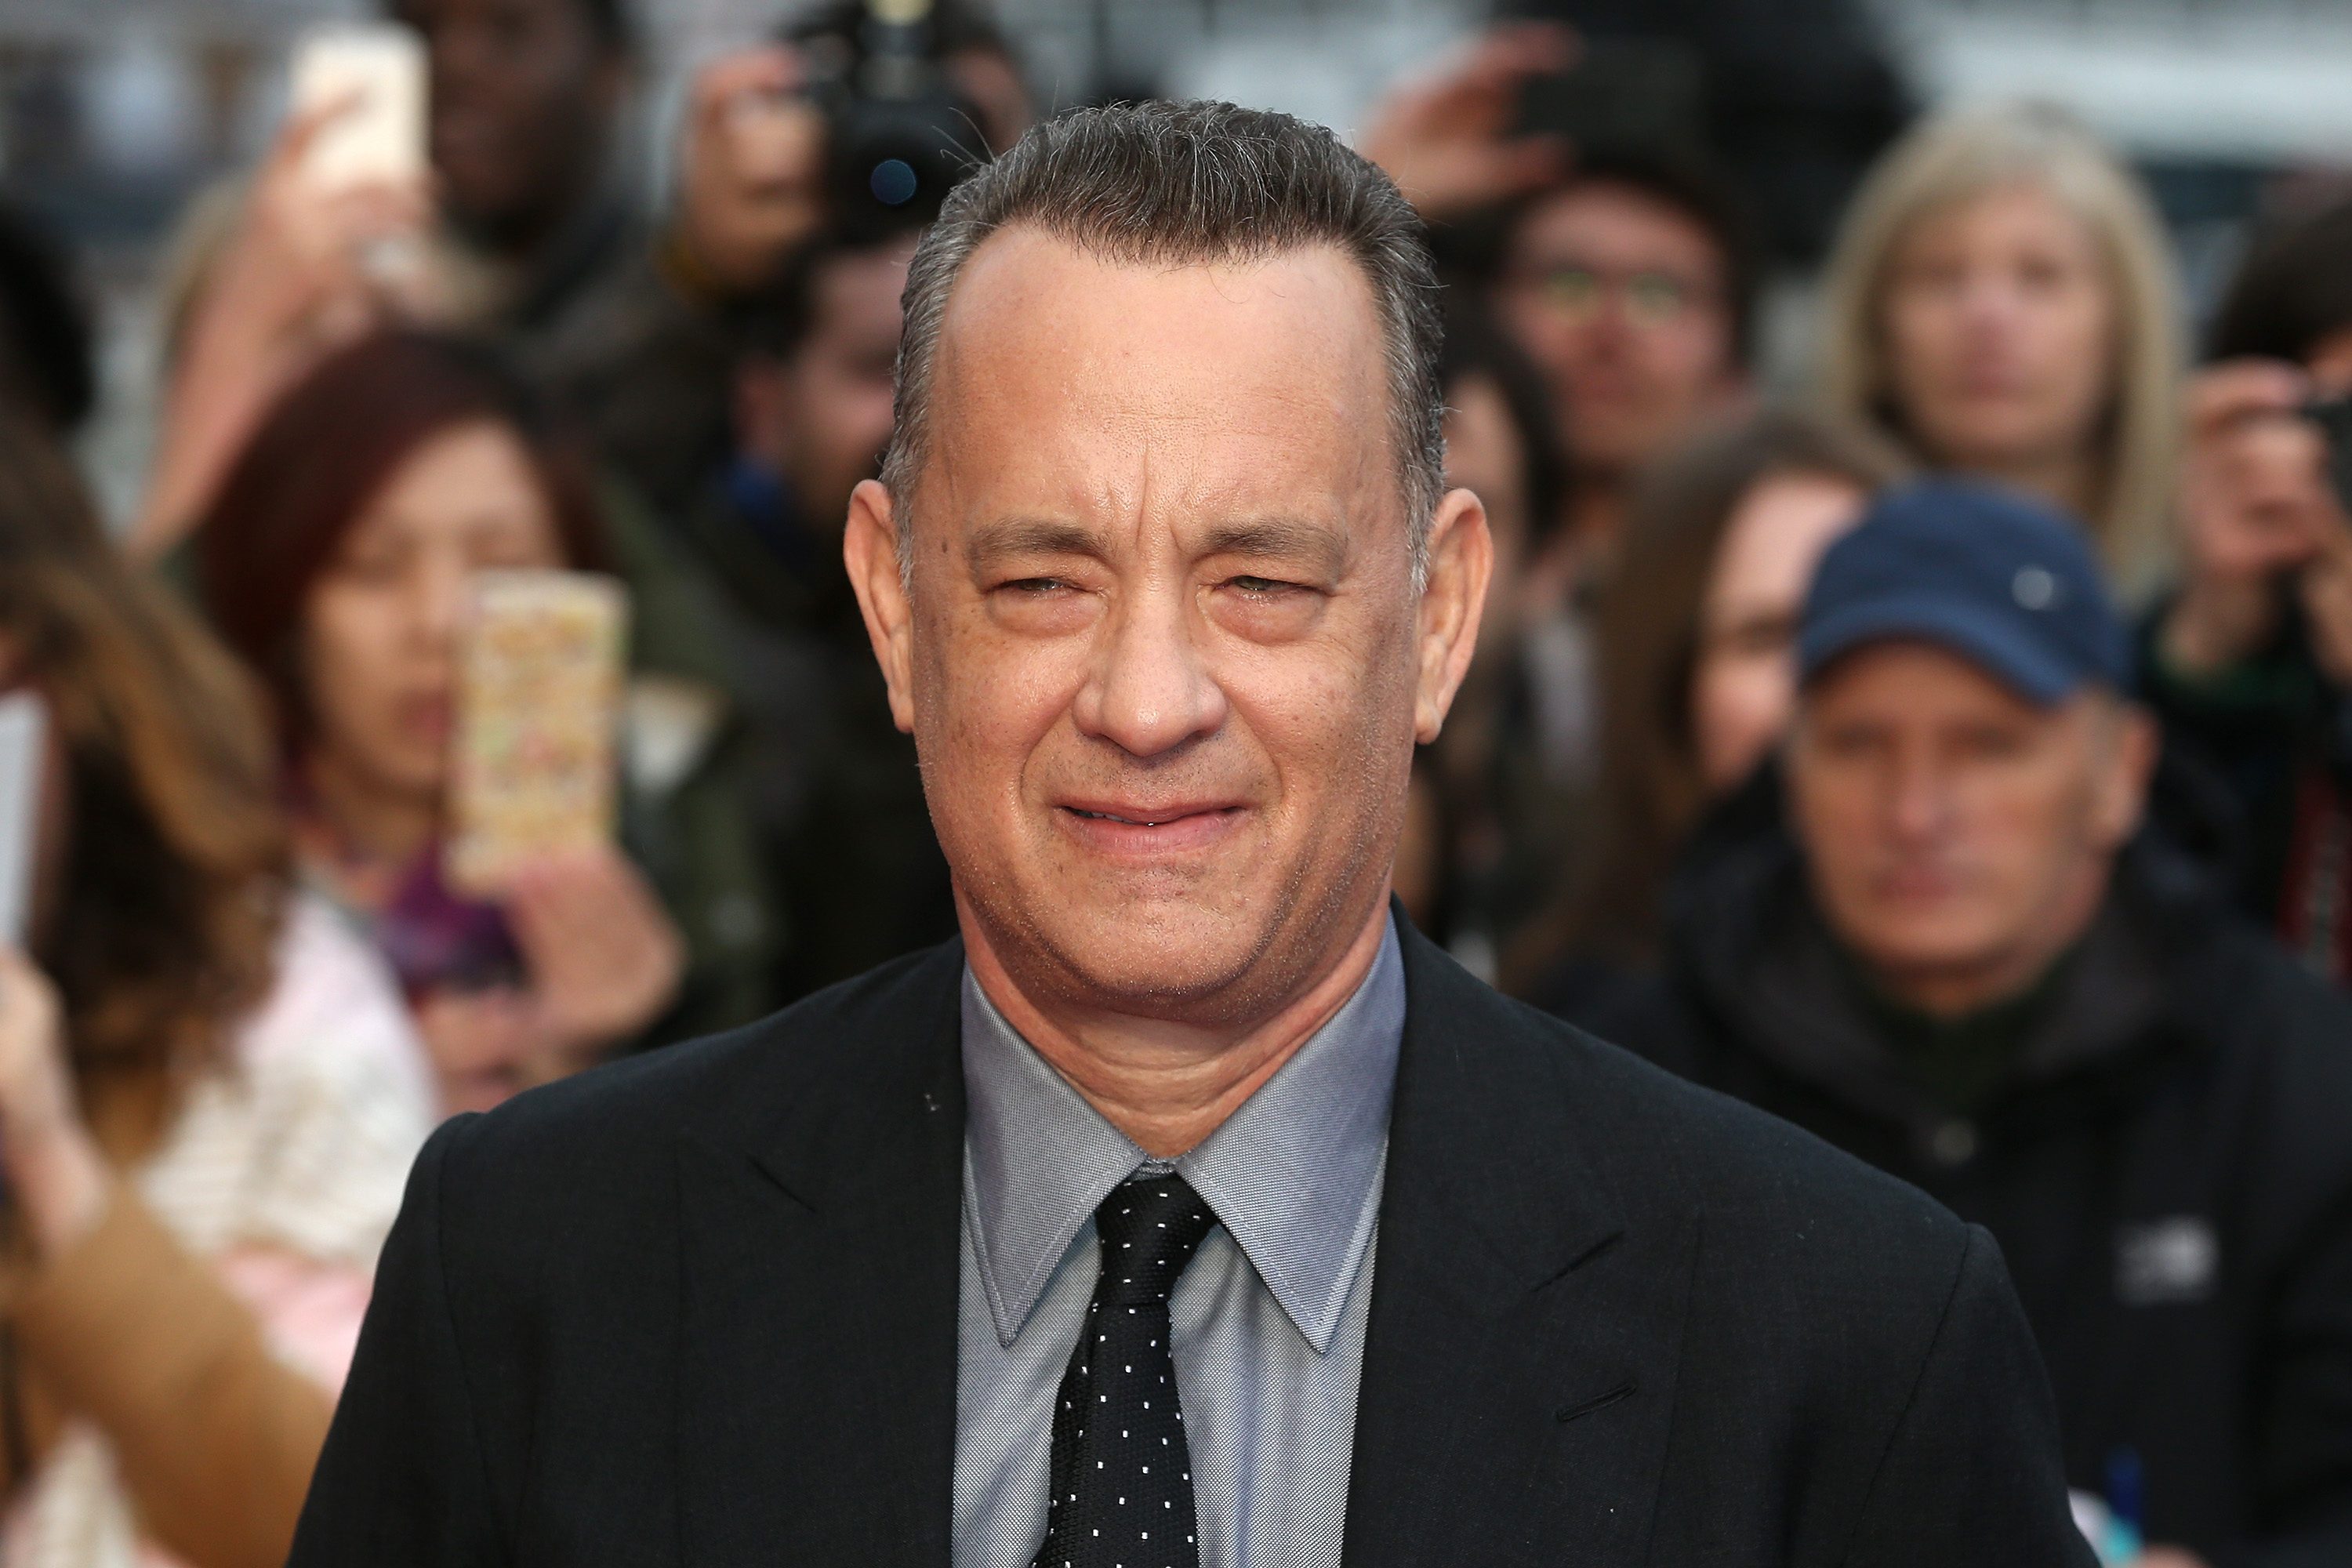 Tom Hanks at BFI Southbank on April 25, 2016 in London, England.